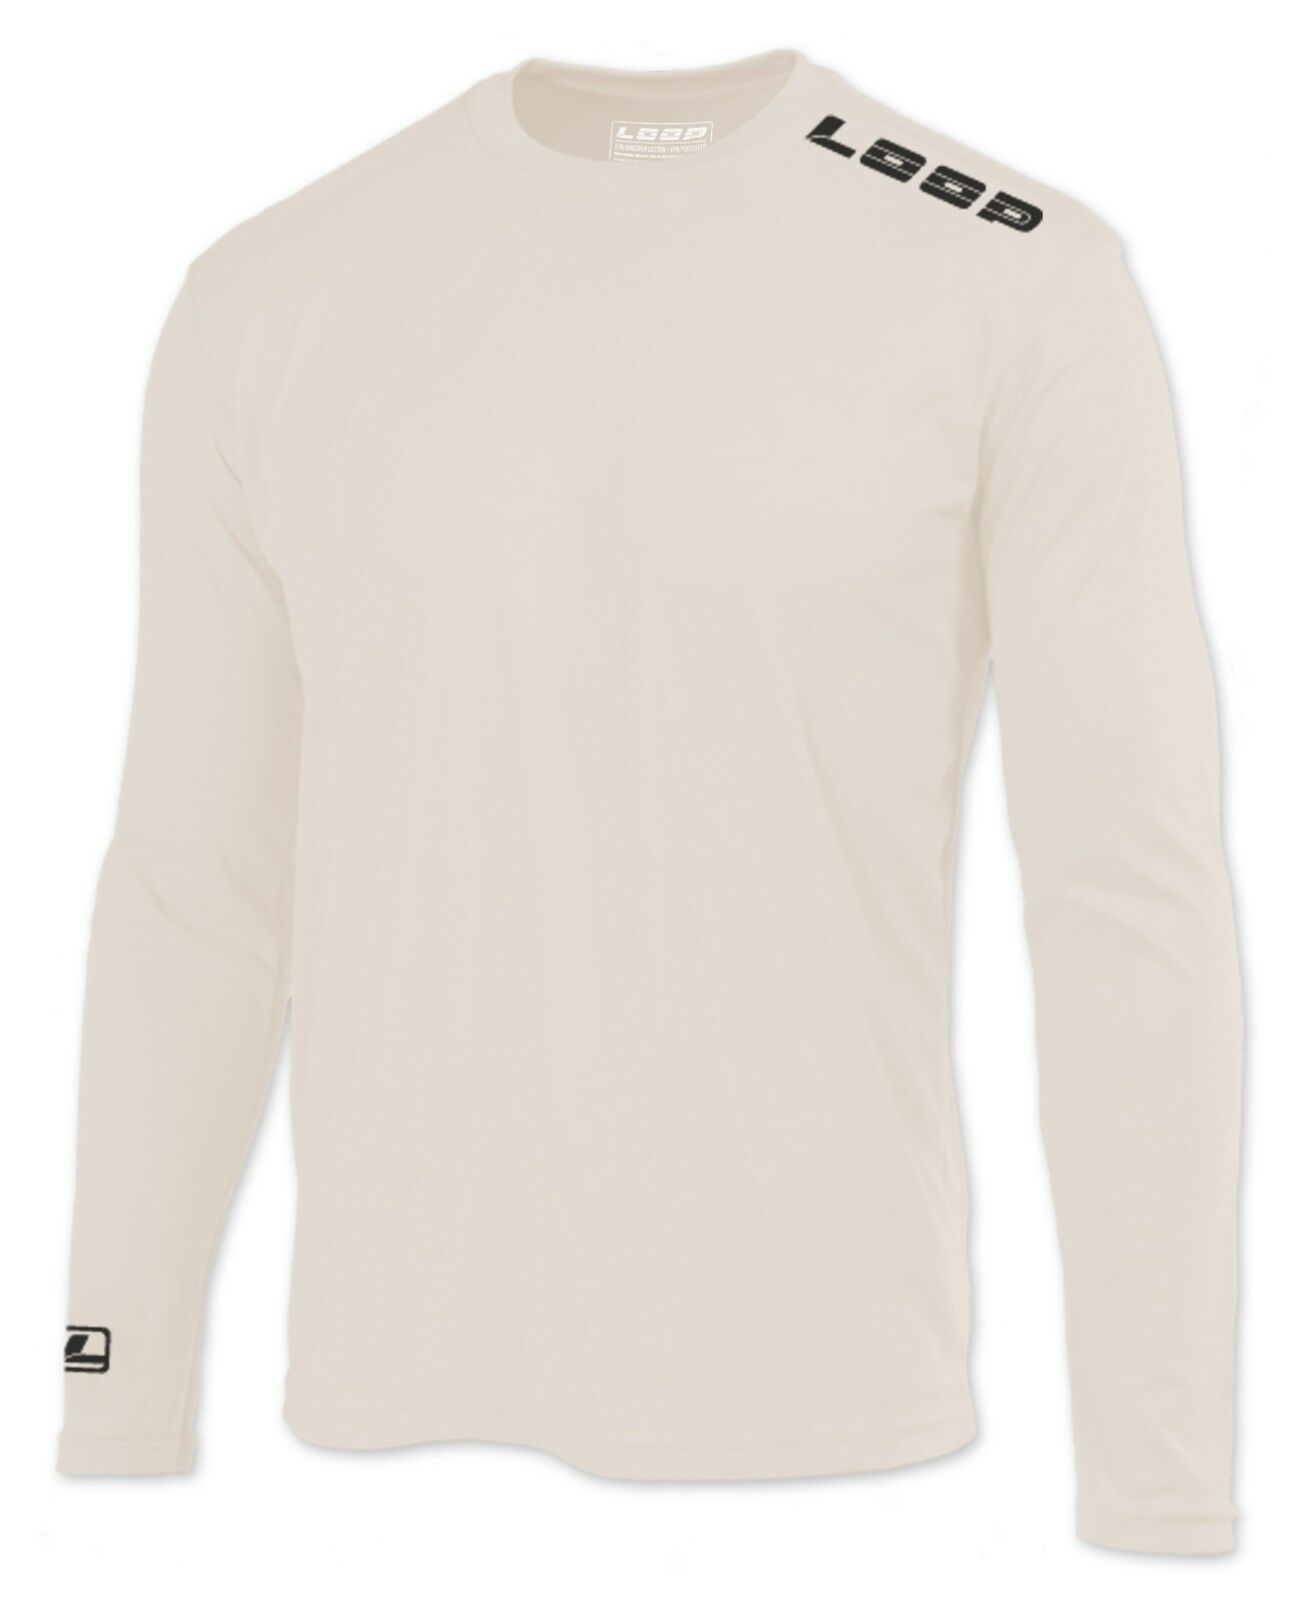 LOOP Fly Fishing Sun Shirt Tech Shirt Long Sleeve Sand